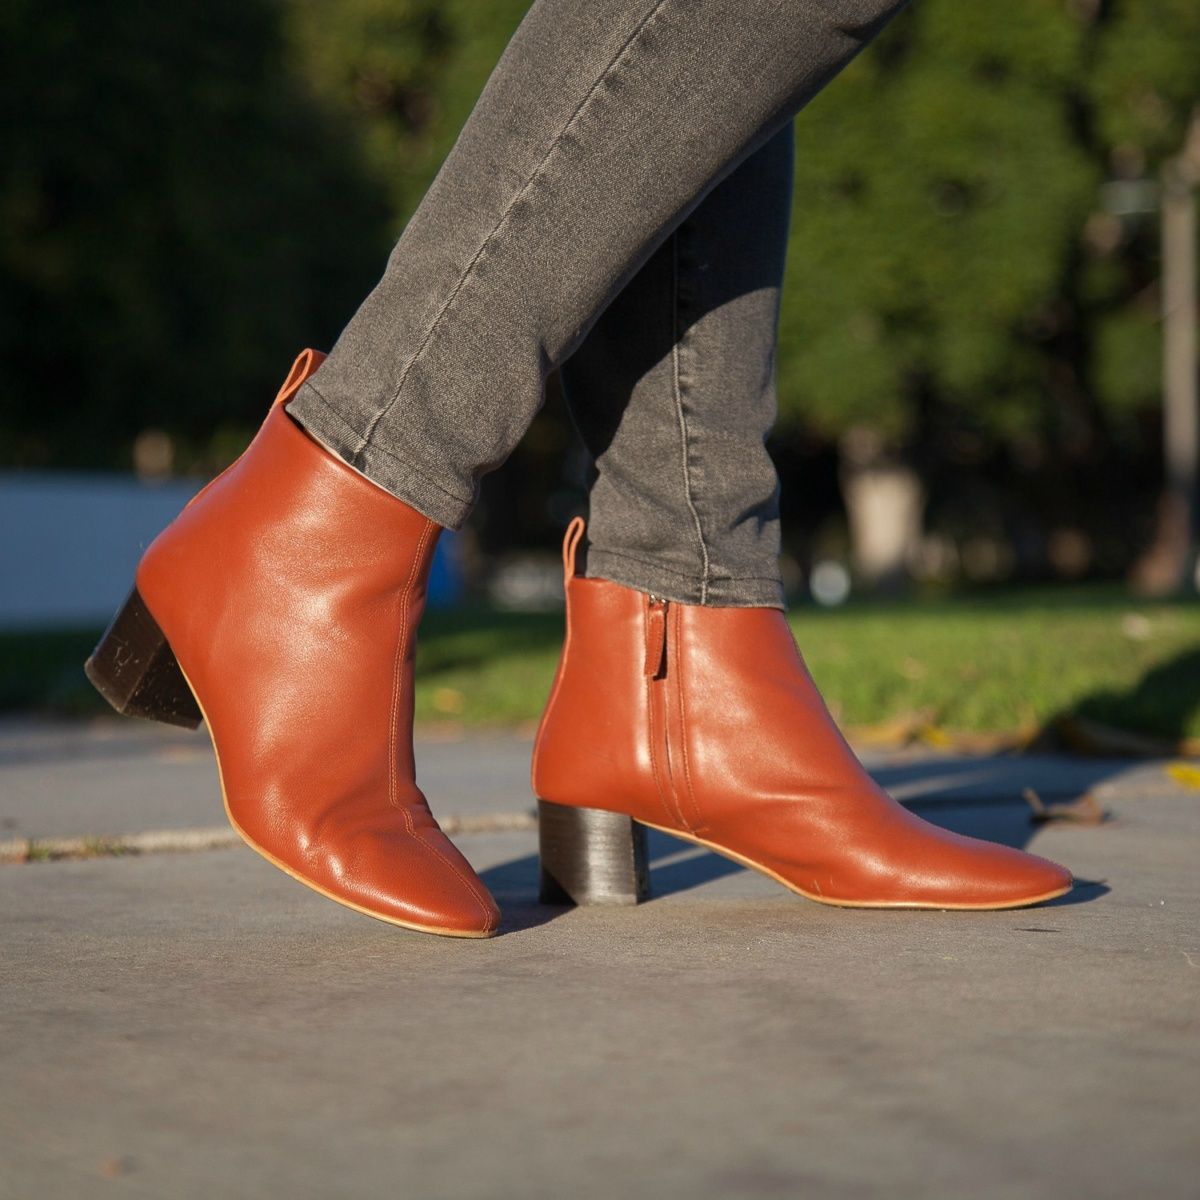 bf9f890edfe2 Susan B. wears Everlane Day boots in Brick. Details at une femme d un  certain age.